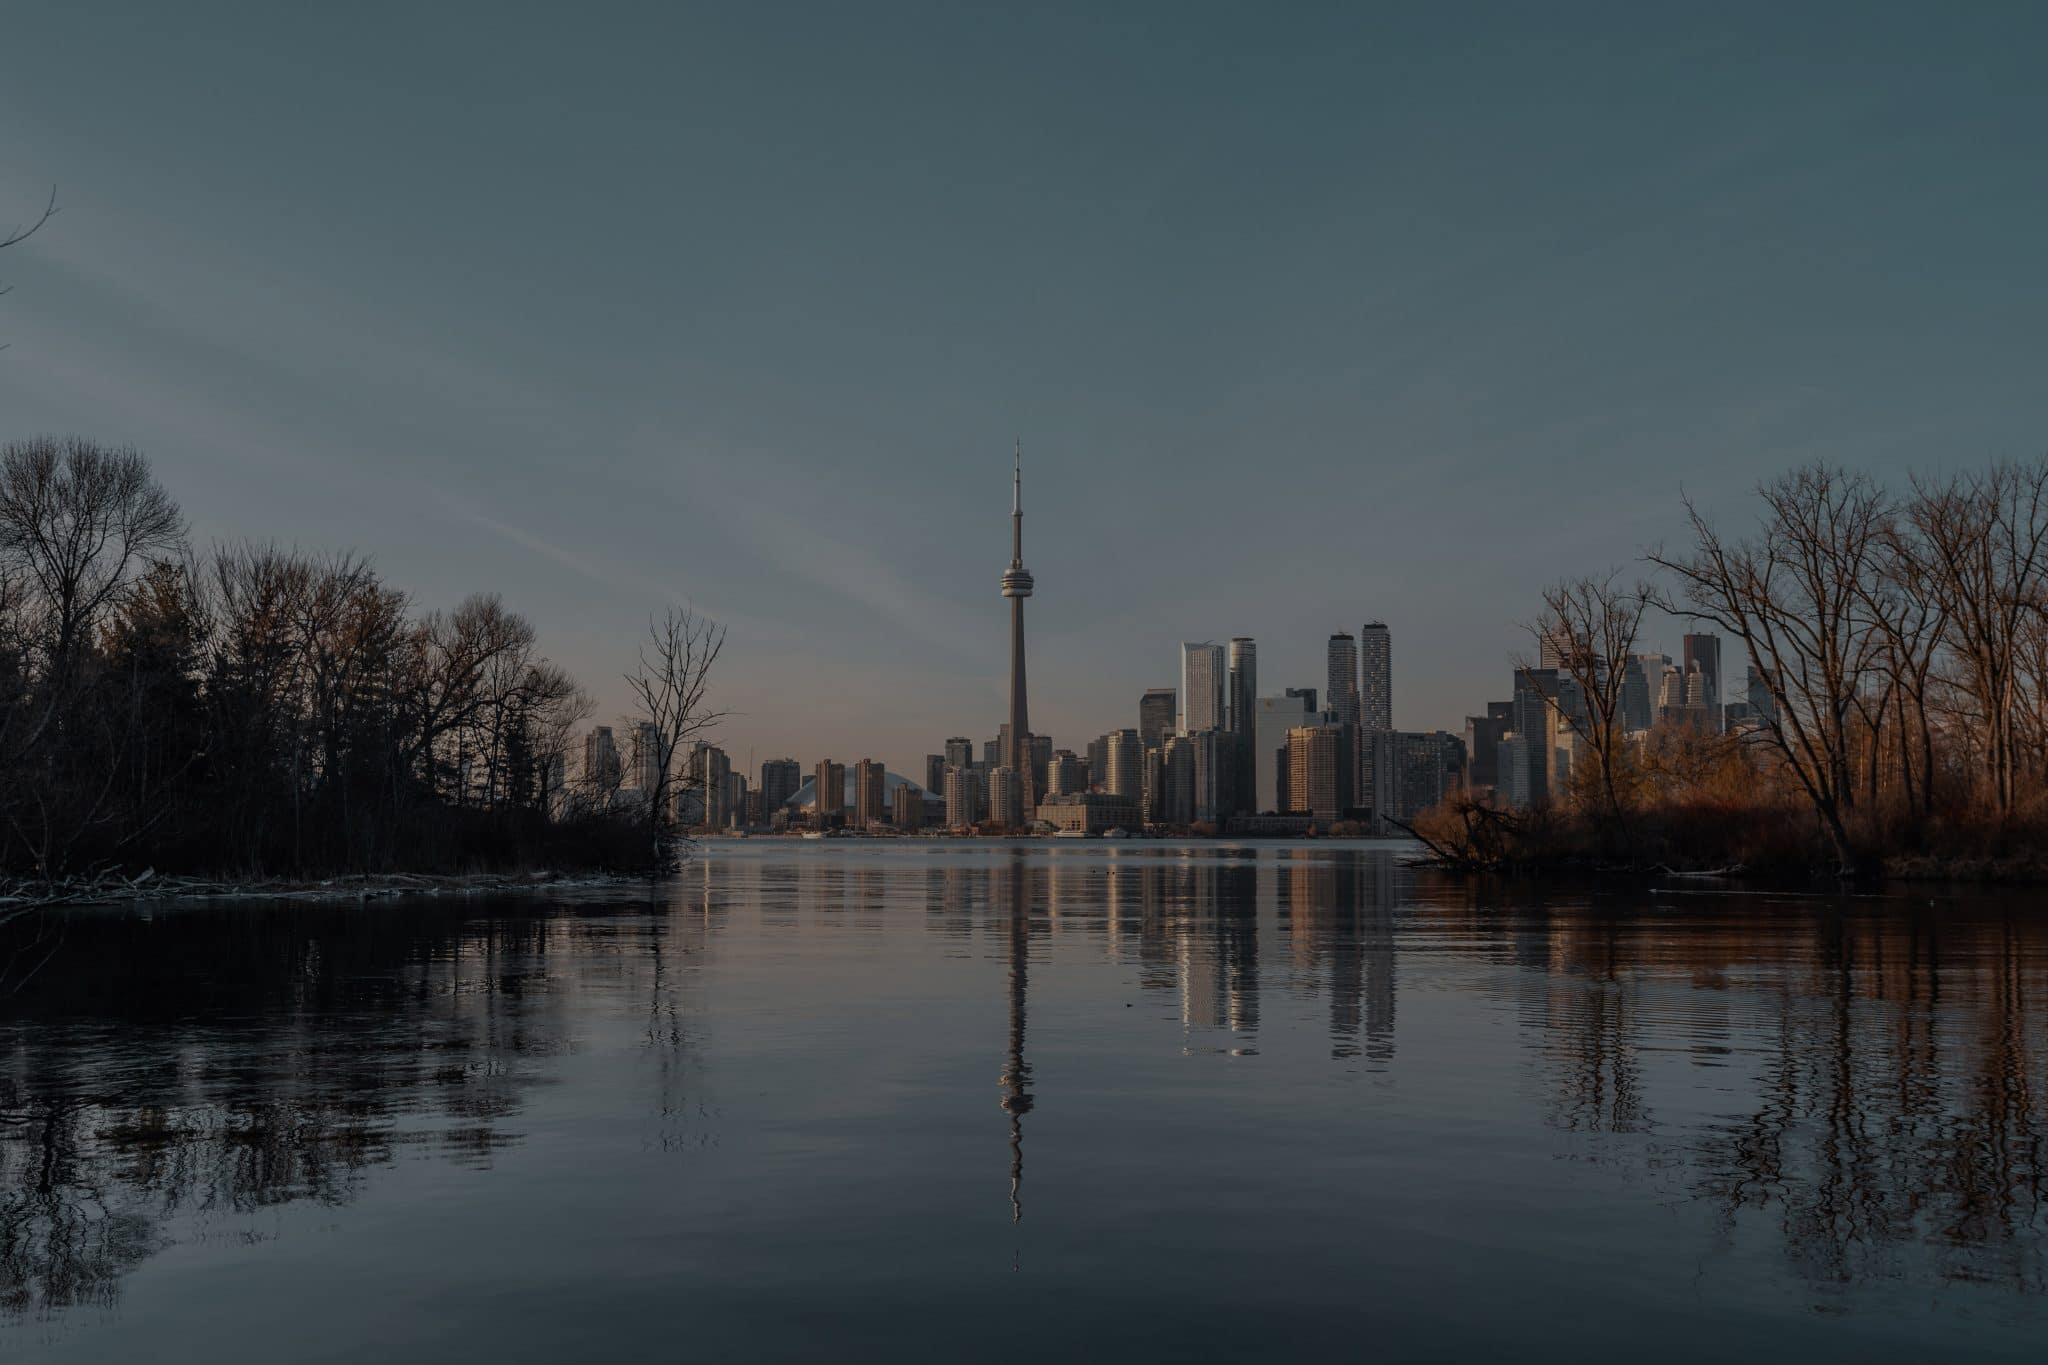 Toronto waterfront with the CN Tower in the distance